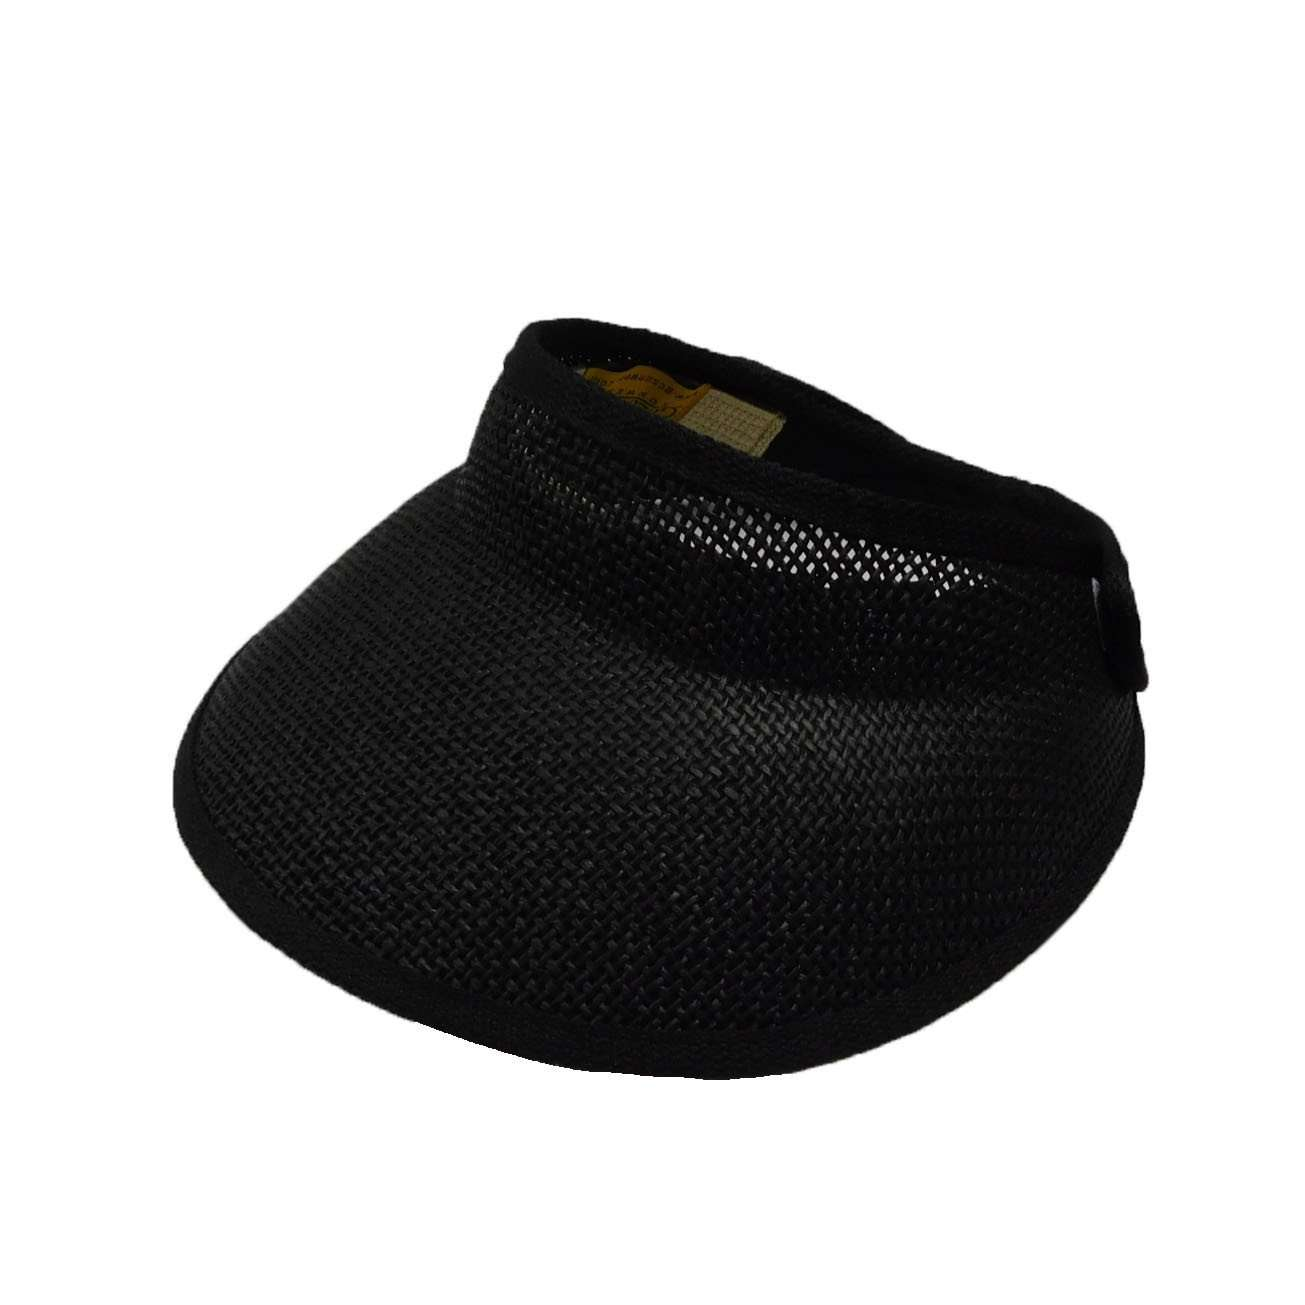 Gold Coast No Head Ache Sun Visor - Black - SetarTrading Hats